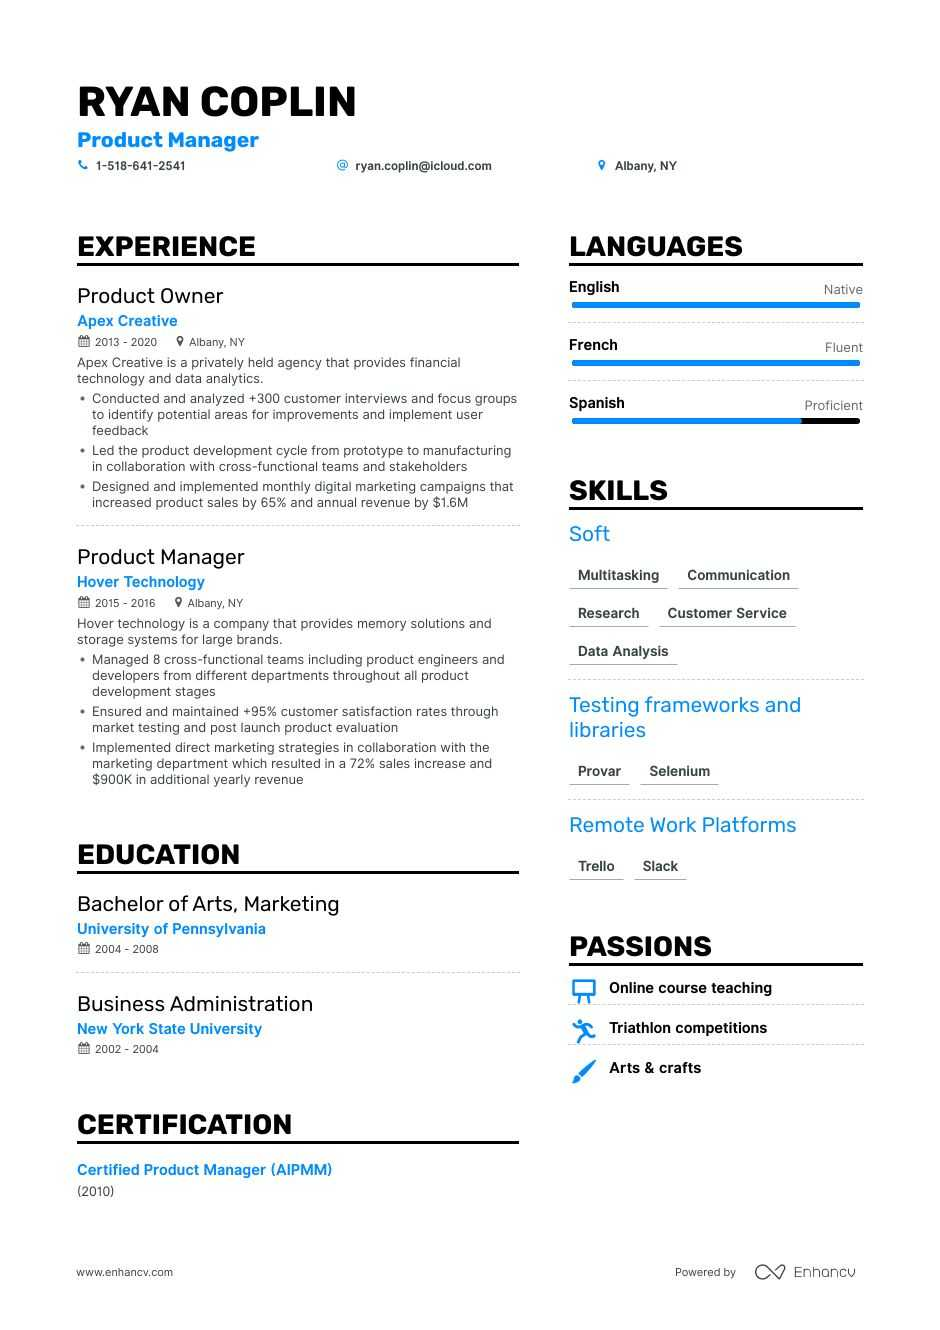 work from home resume samples pro tips skills generated verbs for print production Resume Work From Home Resume Skills